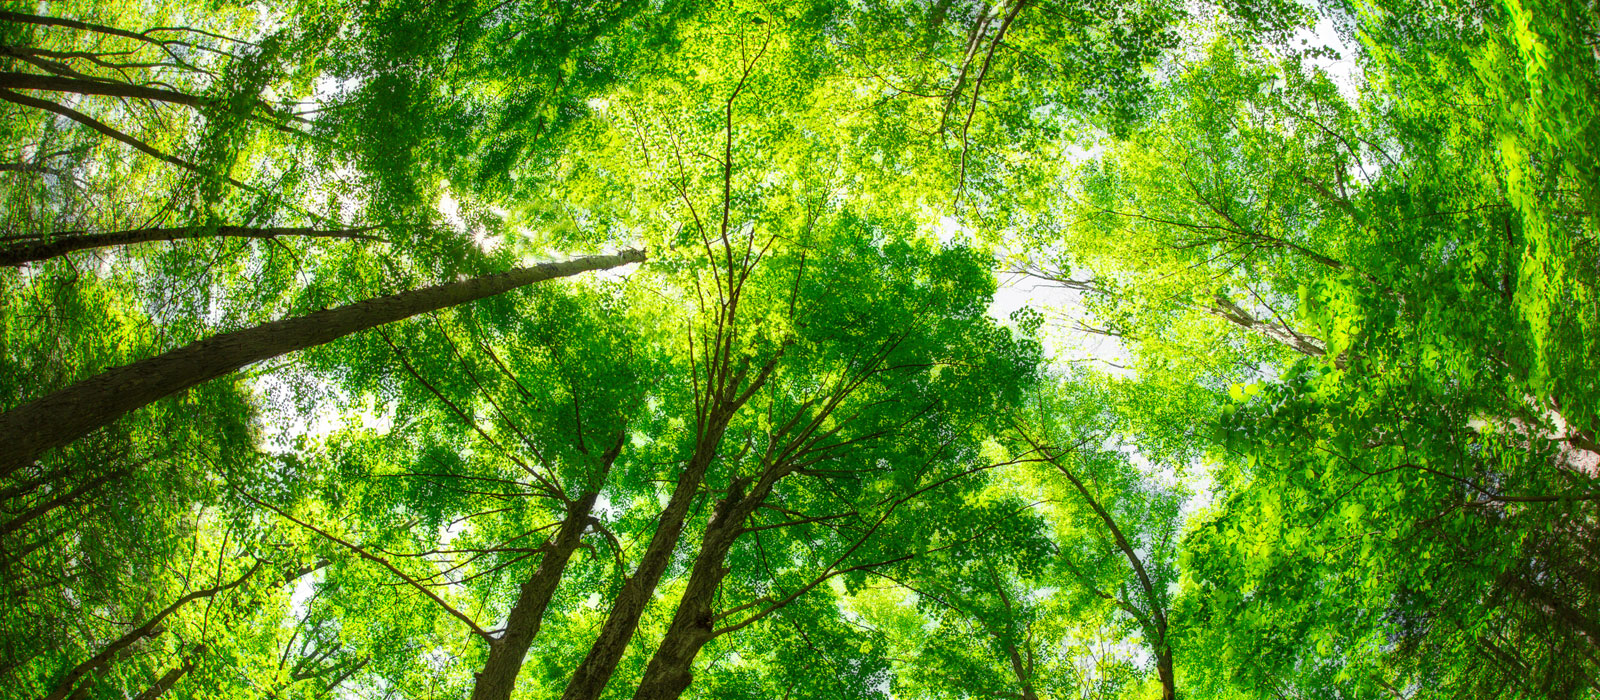 How Business is Taking Action to Reforest Europe